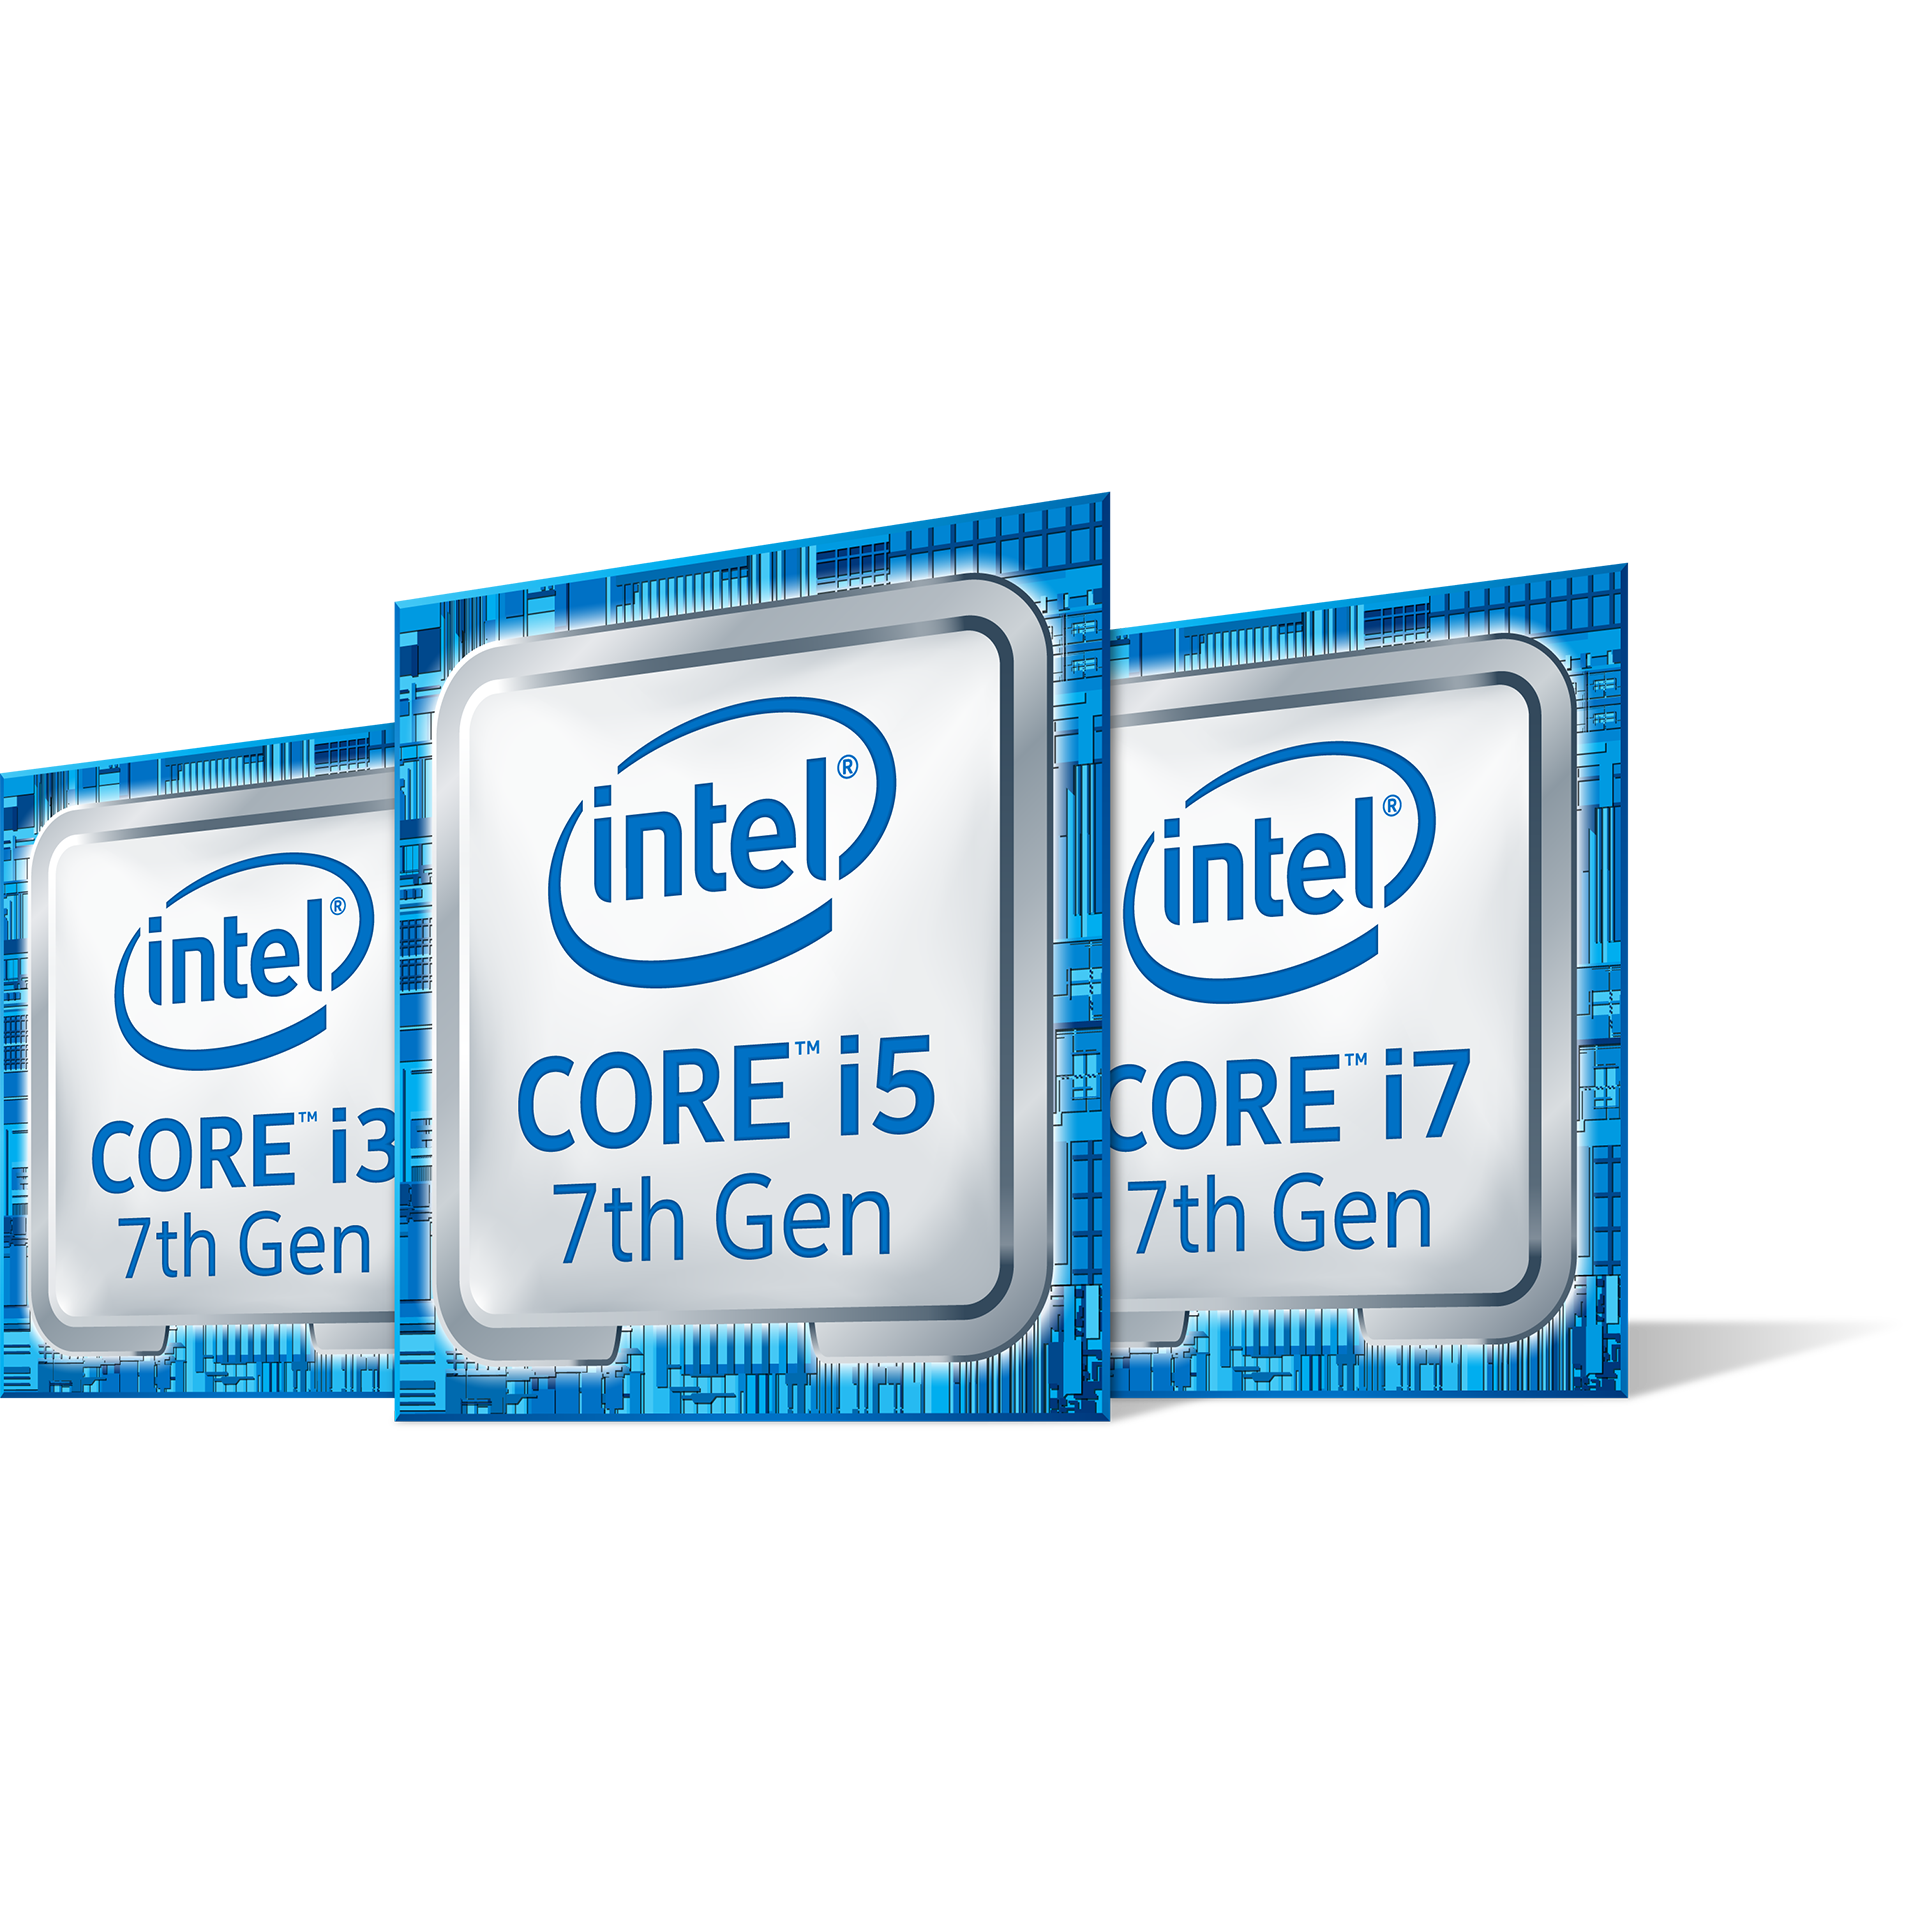 Zevende generatie Intel® Core™ processors